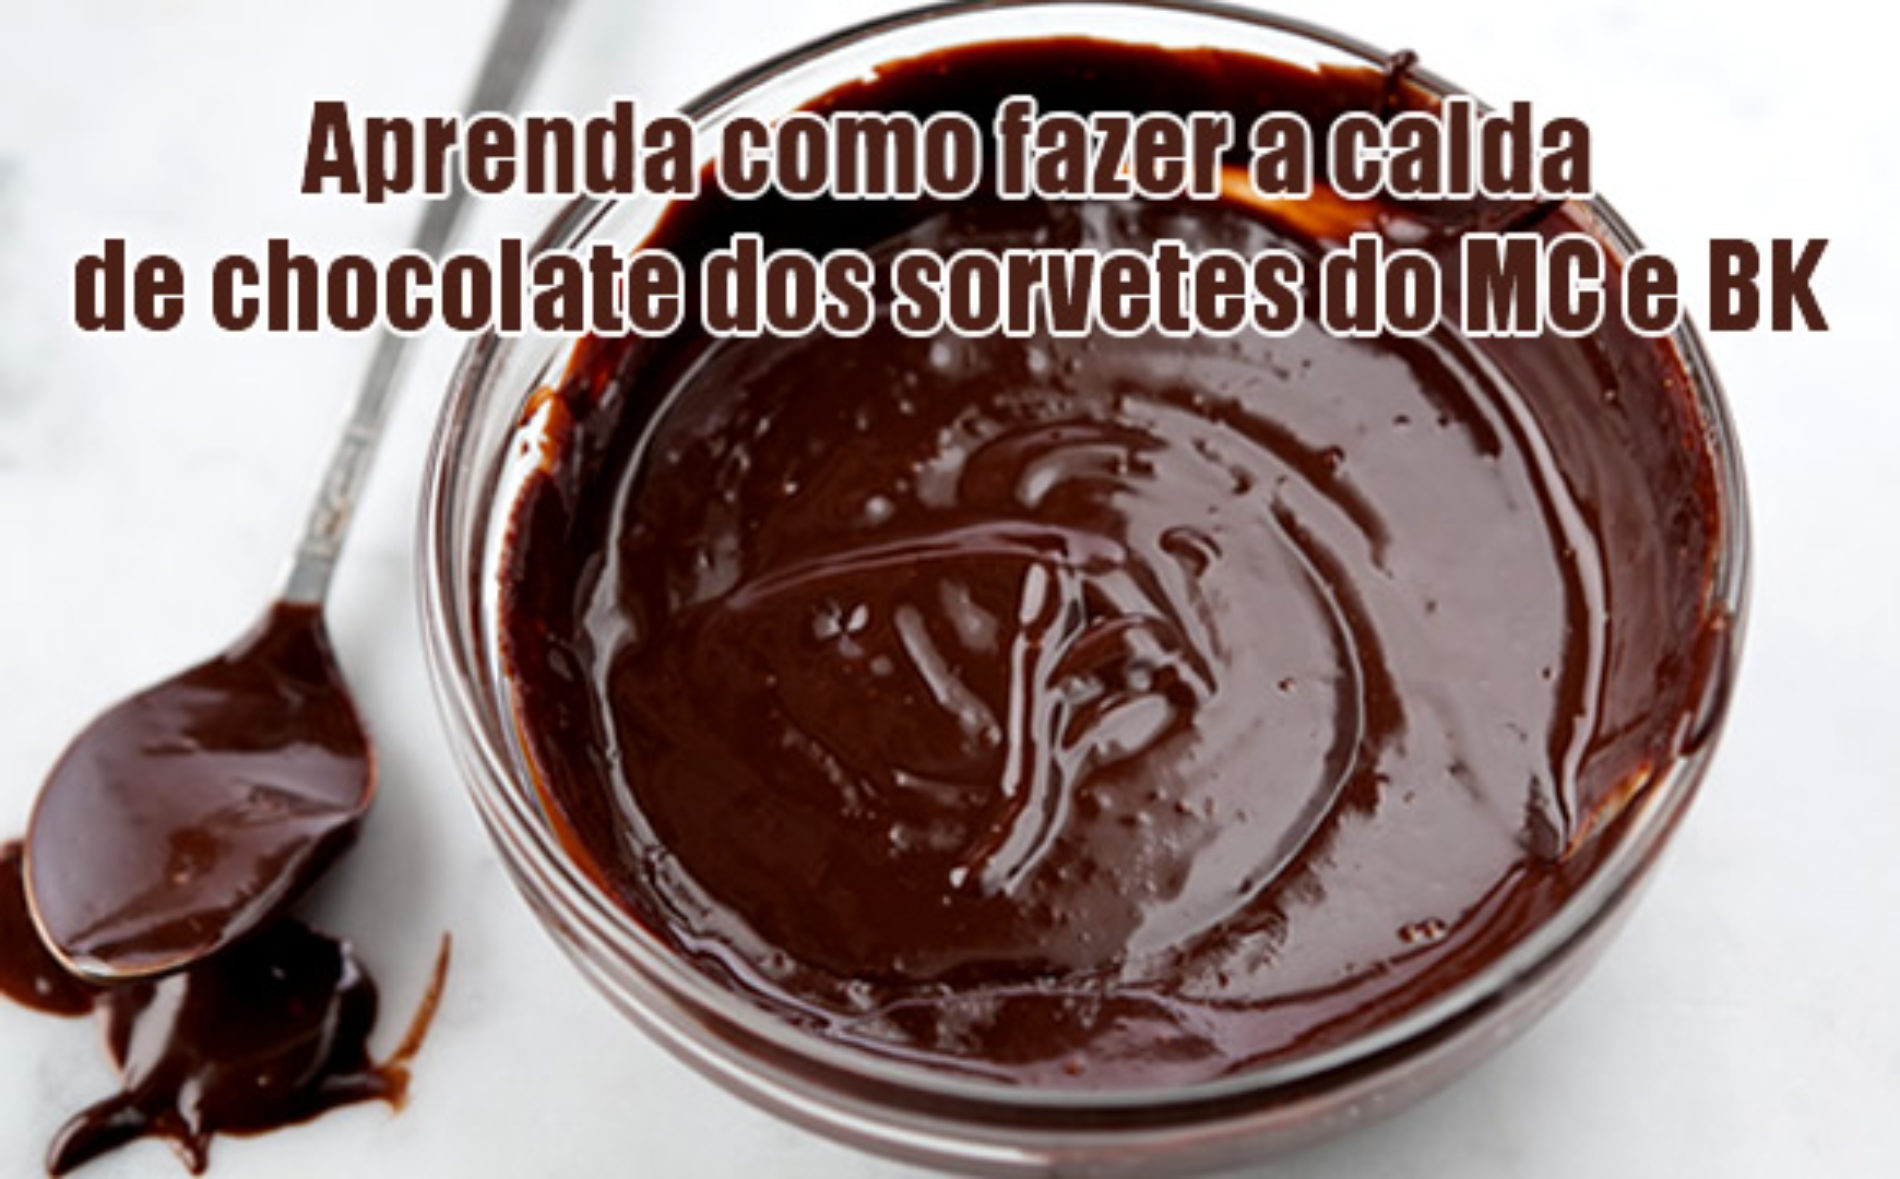 Como fazer a calda de chocolate dos sorvetes do Mc Donalds e Burger King